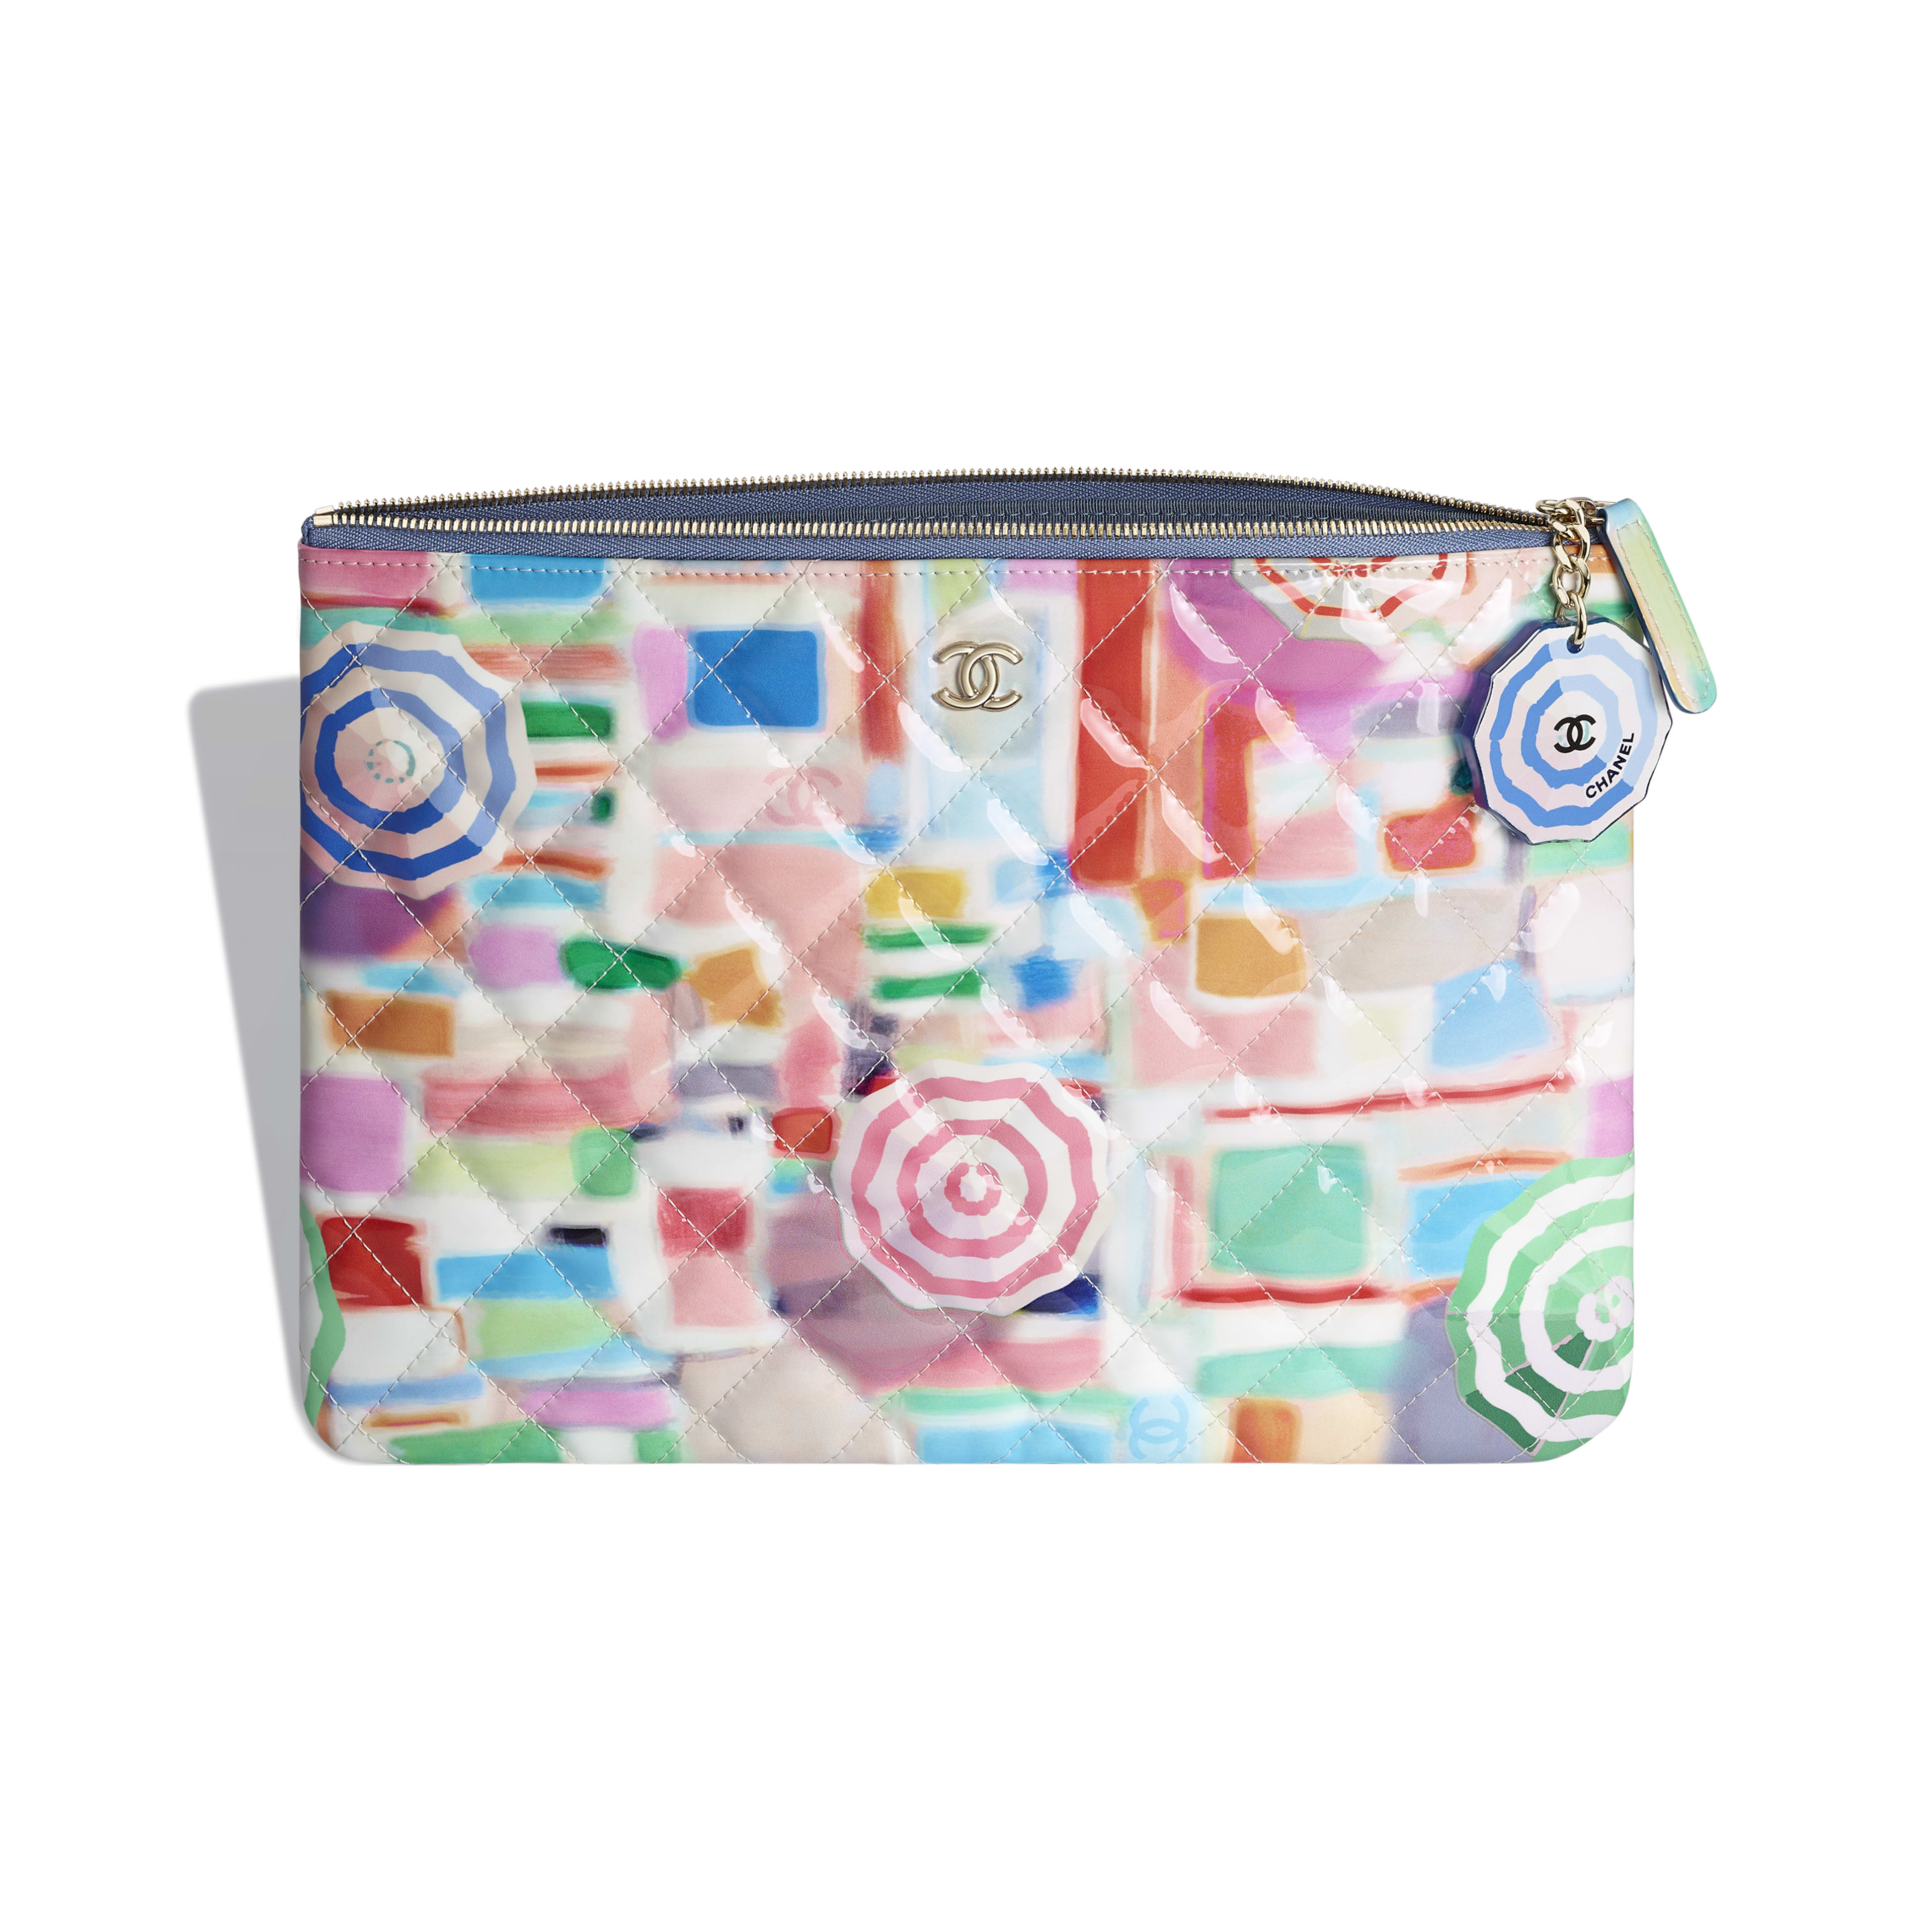 Classic Pouch - Multicolor - Printed Patent Calfskin & Gold-Tone Metal - Other view - see full sized version